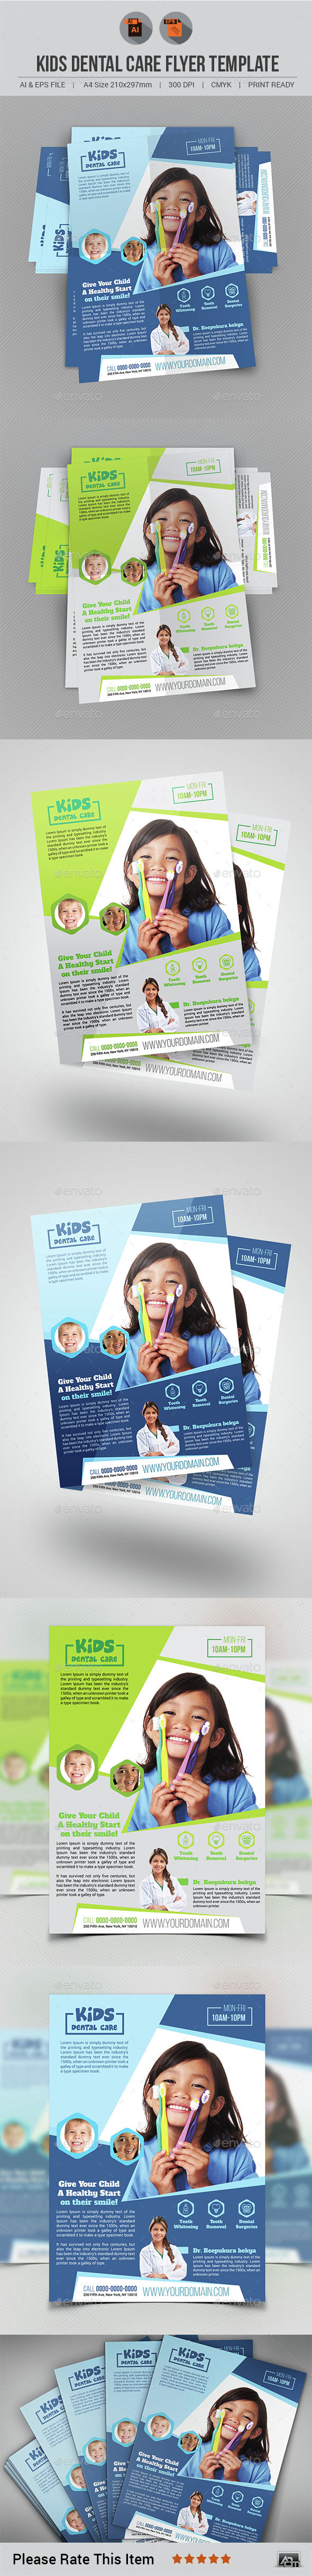 Kids Dental Care Flyer - Corporate Flyers